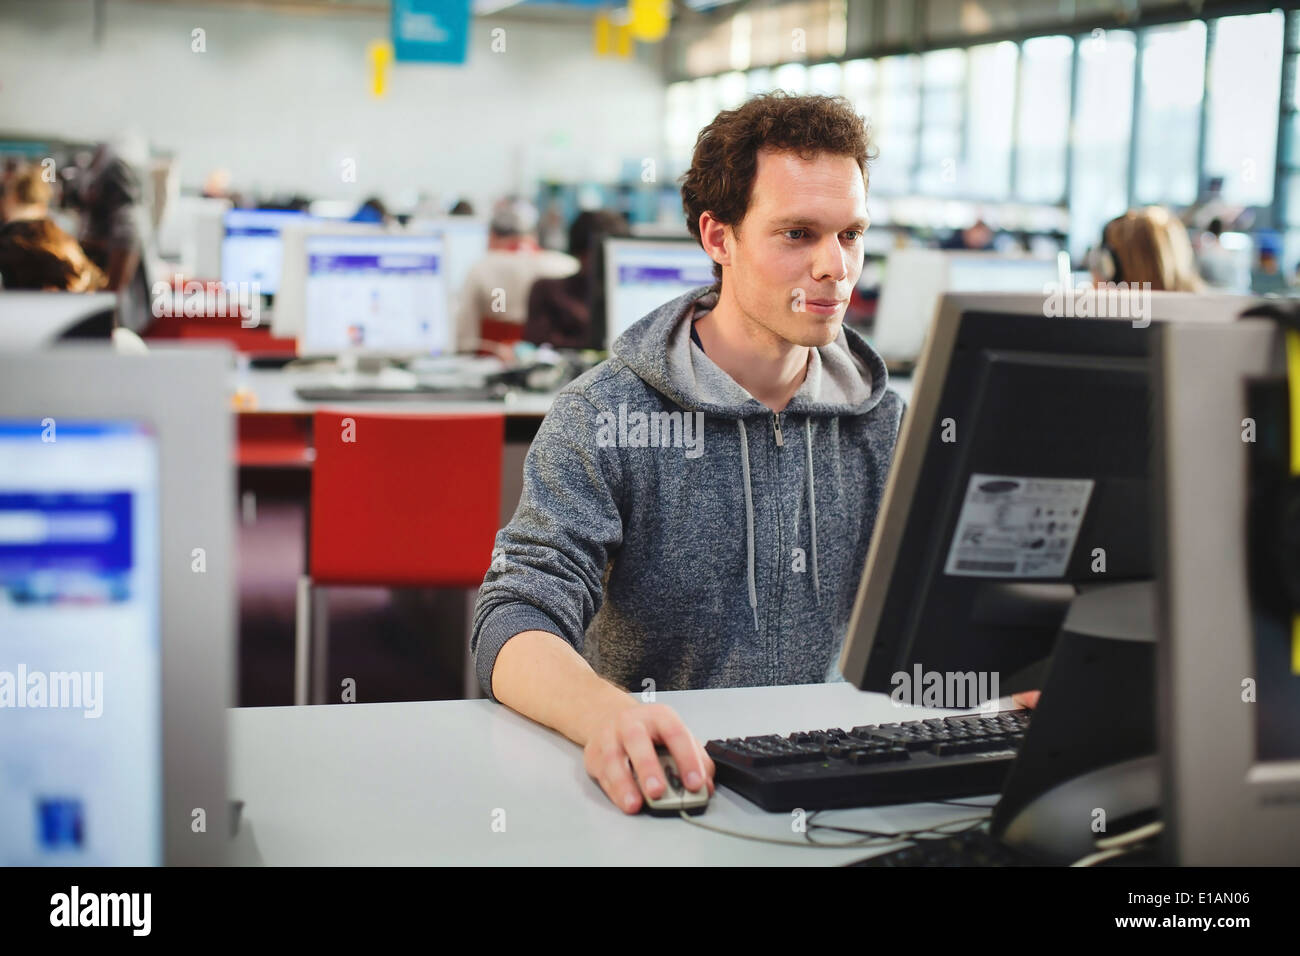 computer education - Stock Image